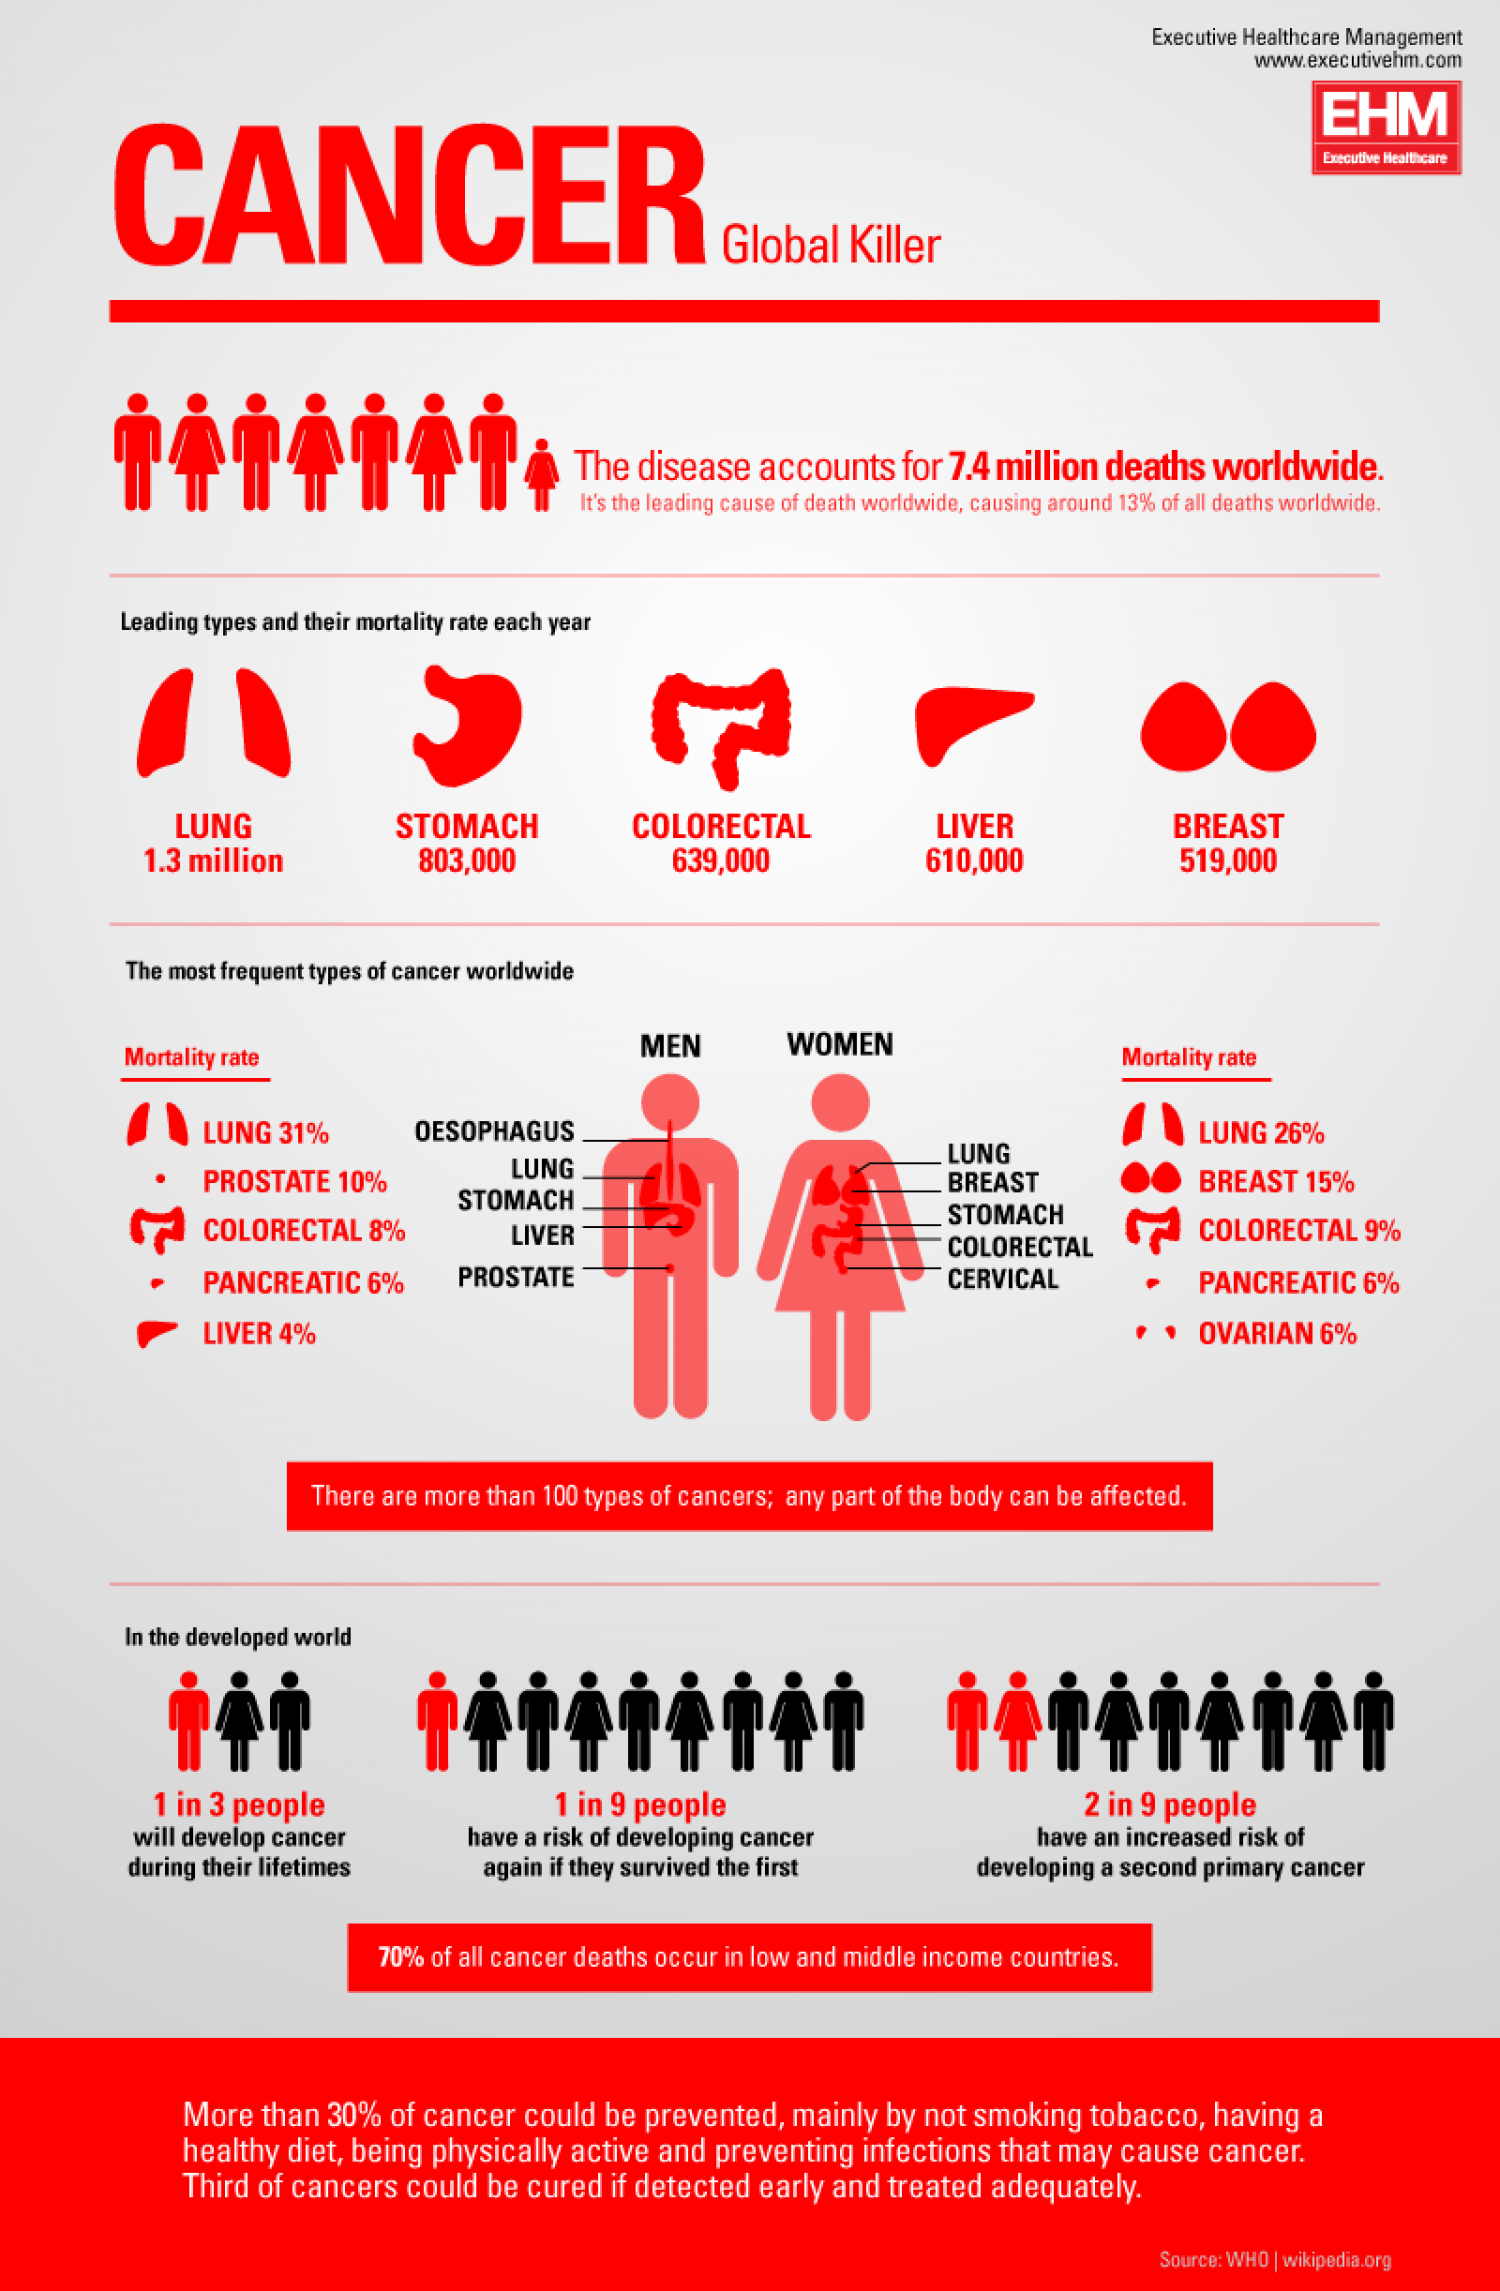 Cancer: Global Killer Infographic